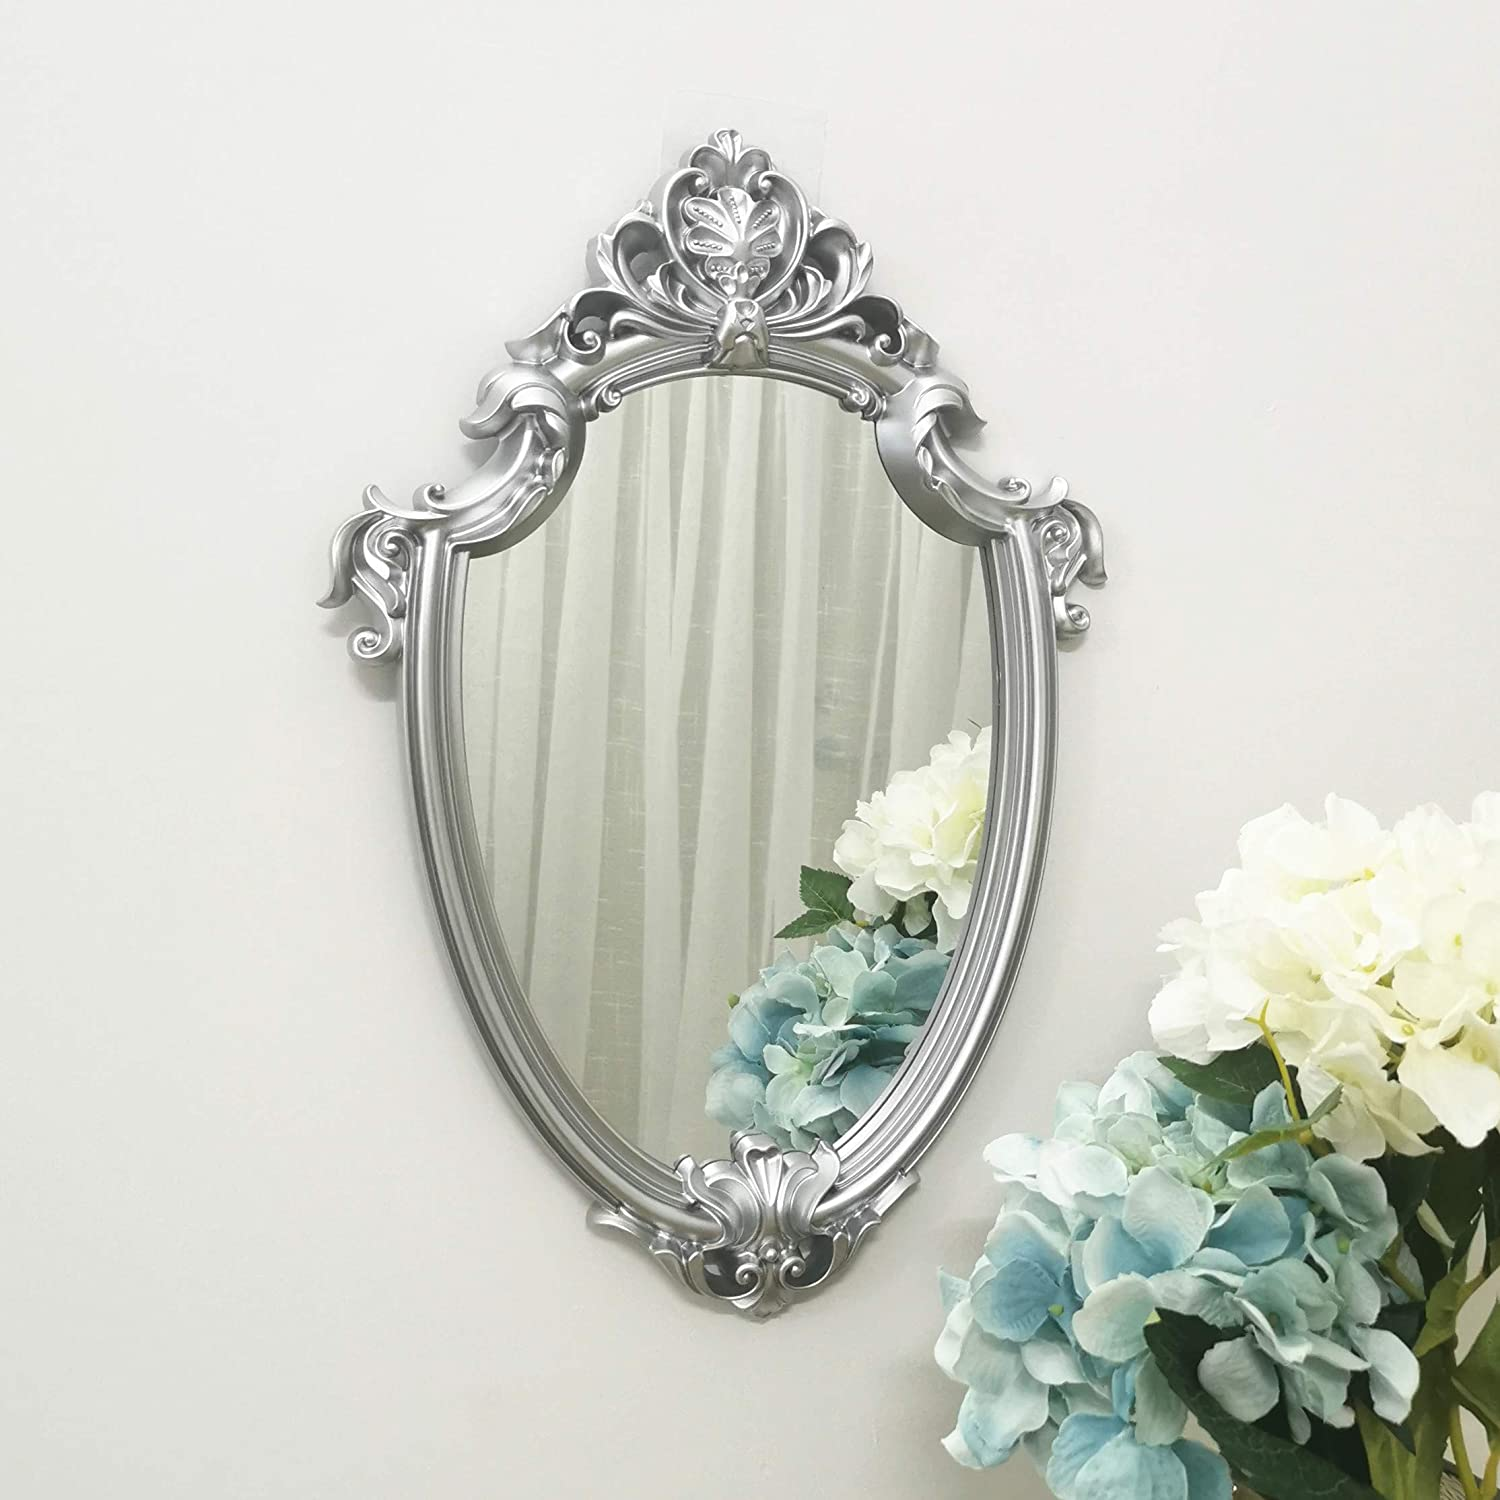 Yash Decorative Wall Mirror, Vintage Hanging Mirrors for Bedroom Living-Room Decor, Silver